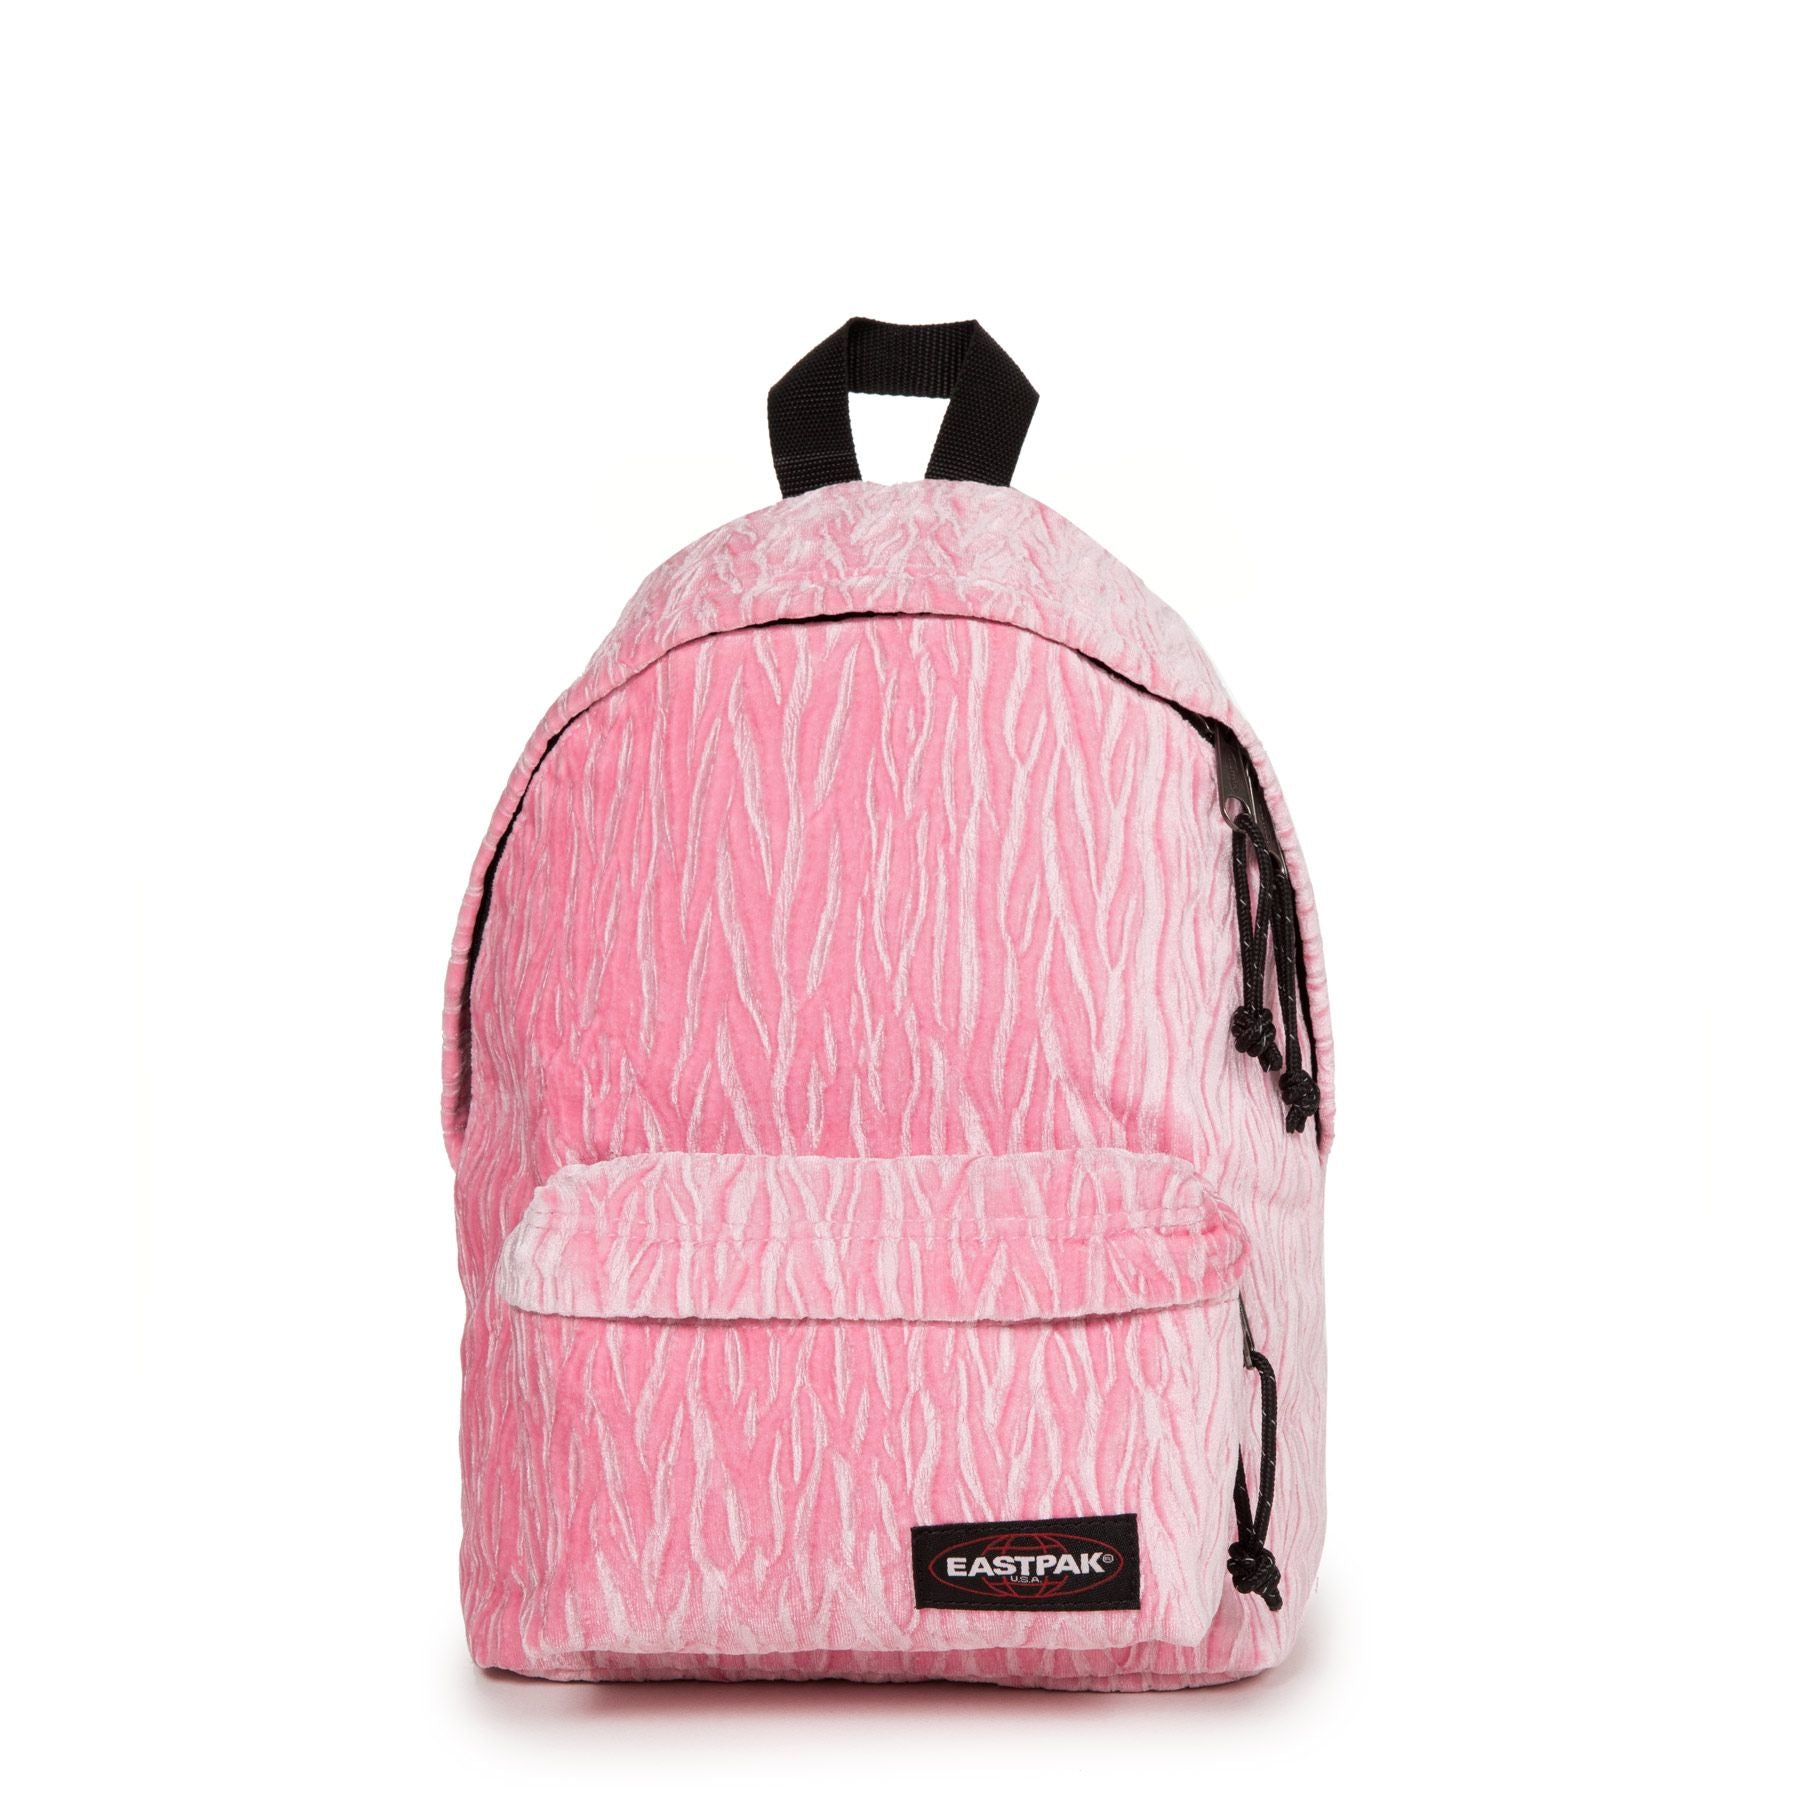 Eastpak Orbit Velvet Backpack Pink